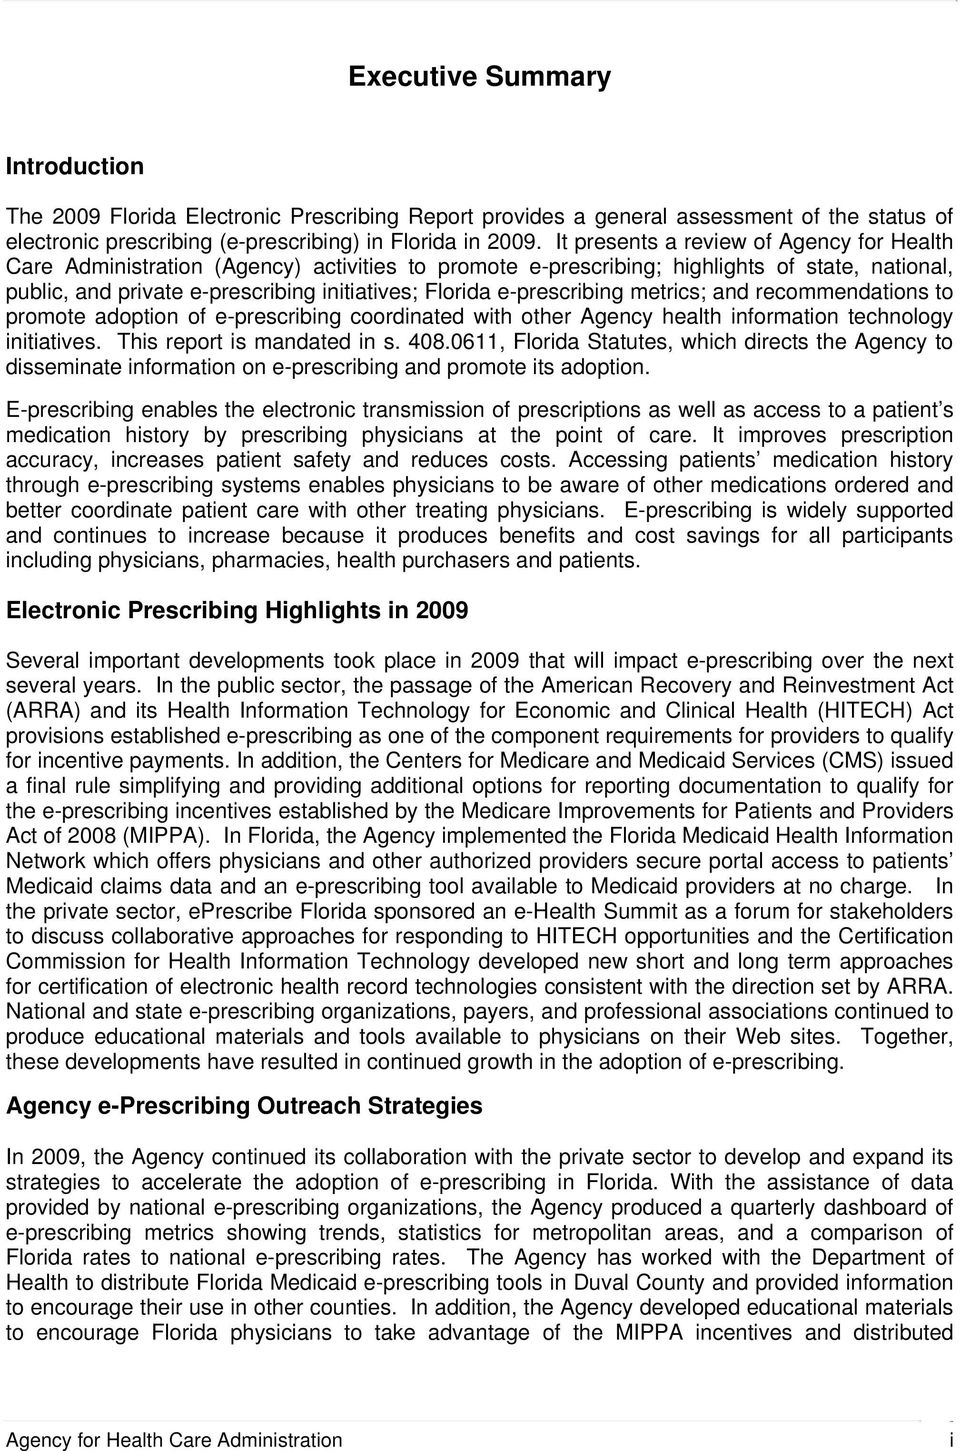 e-prescribing metrics; and recommendations to promote adoption of e-prescribing coordinated with other Agency health information technology initiatives. This report is mandated in s. 408.